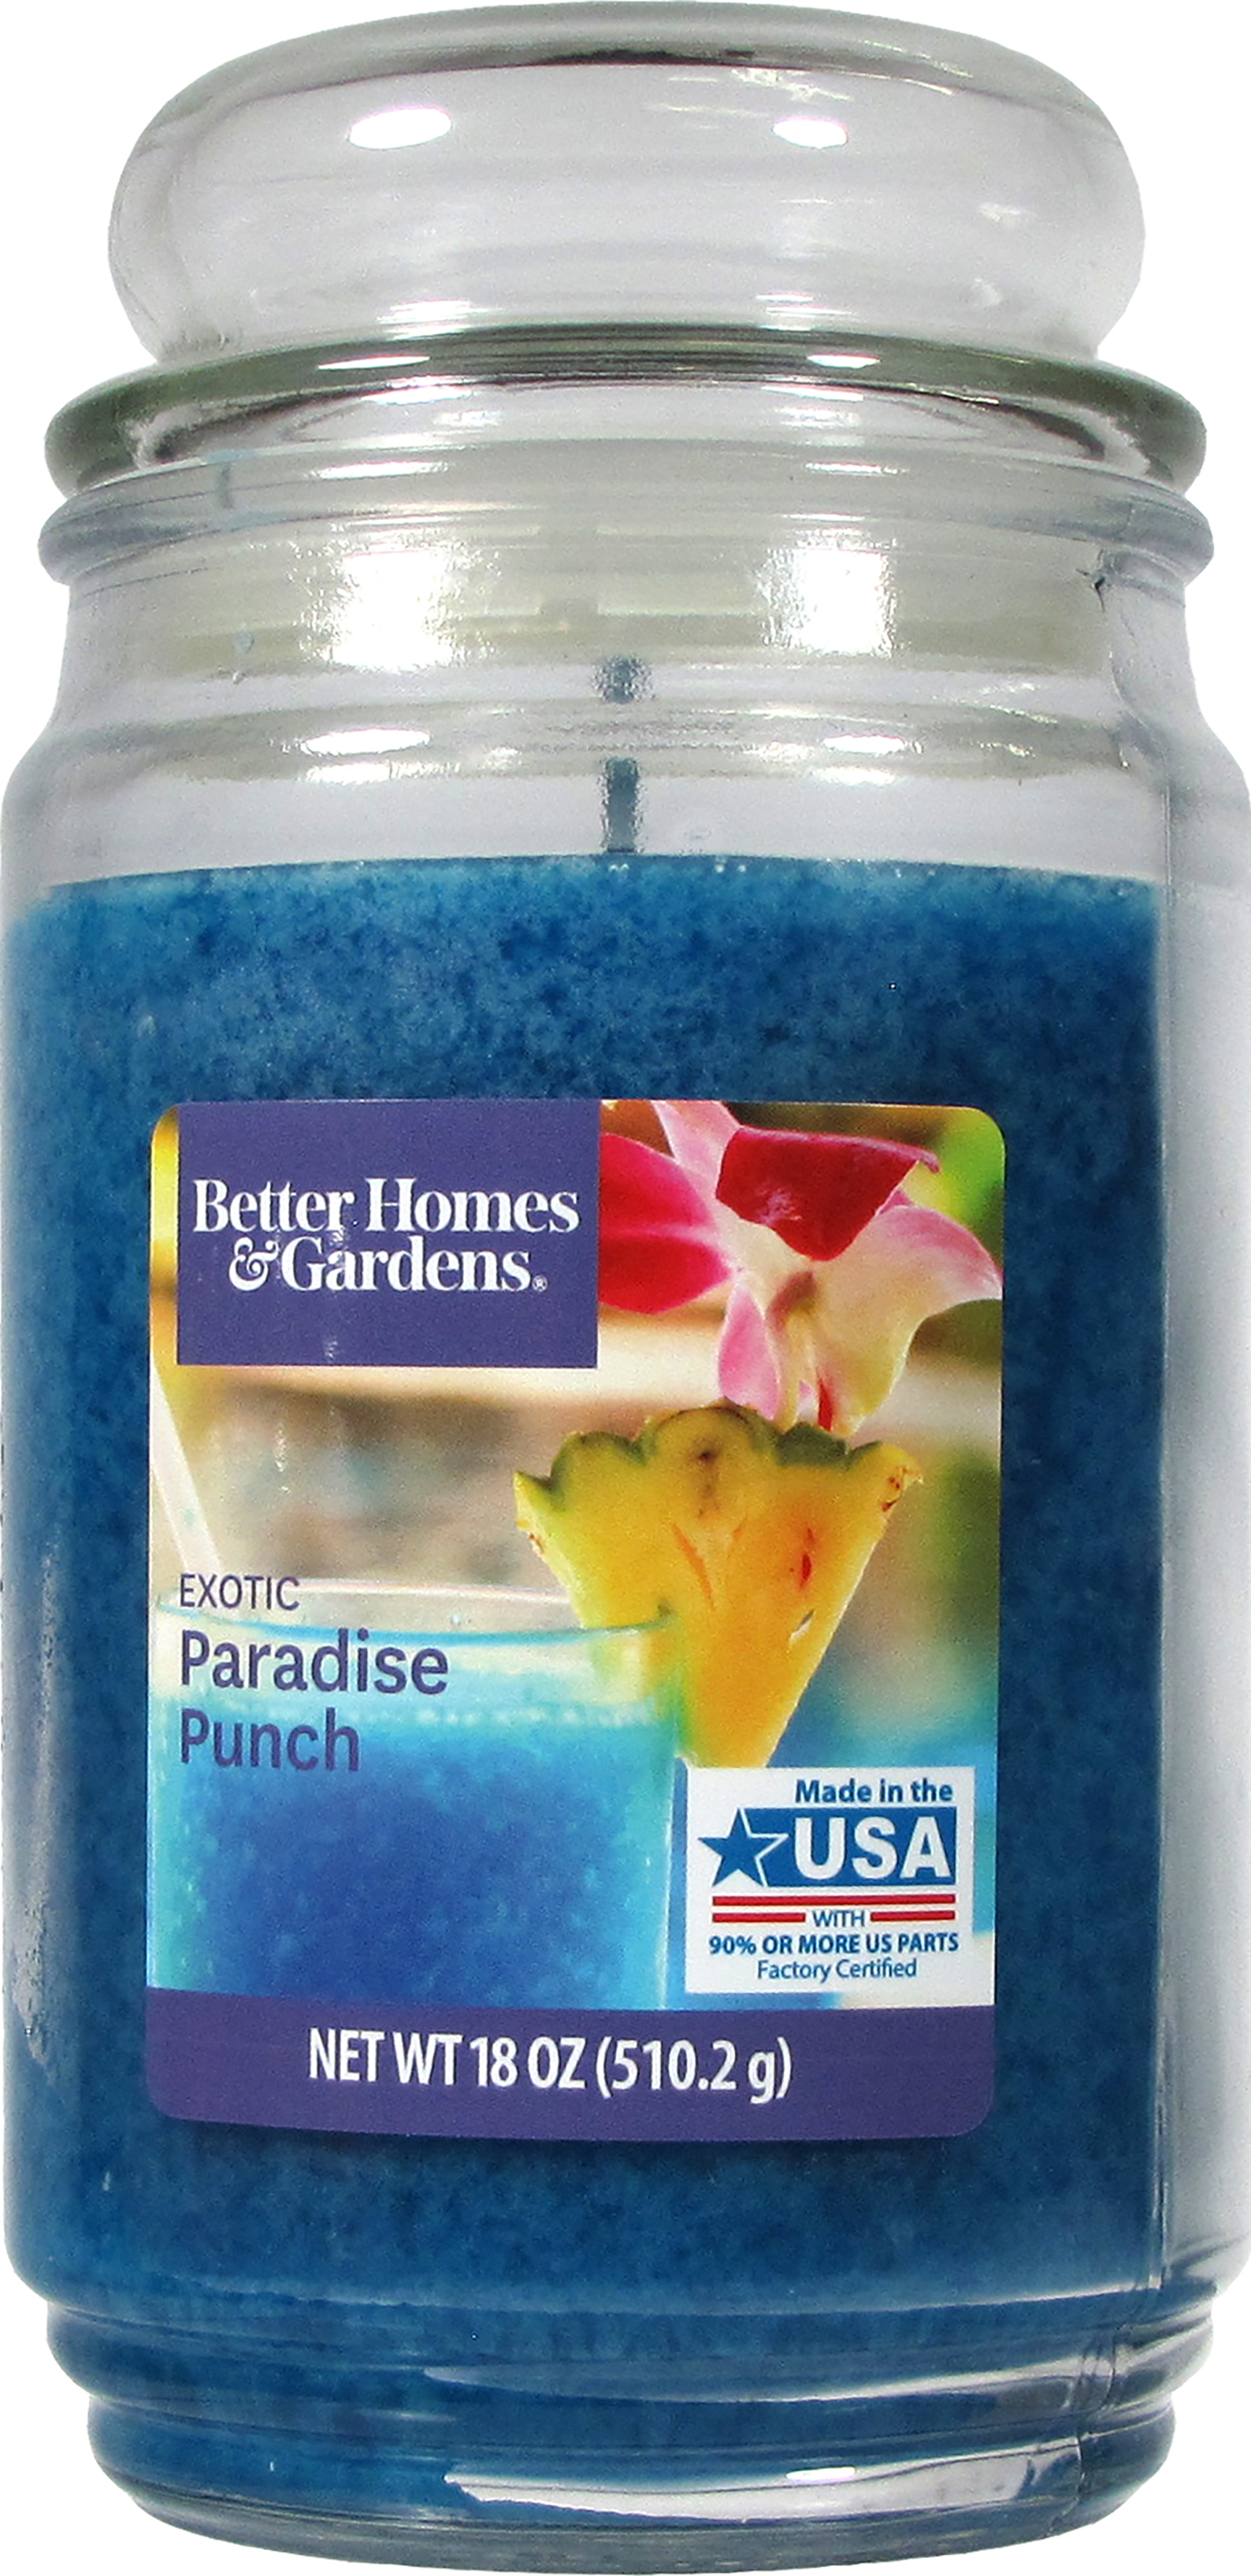 Better Homes and Gardens 18-Ounce Candle, Exotic Paradise Punch by Candle-lite